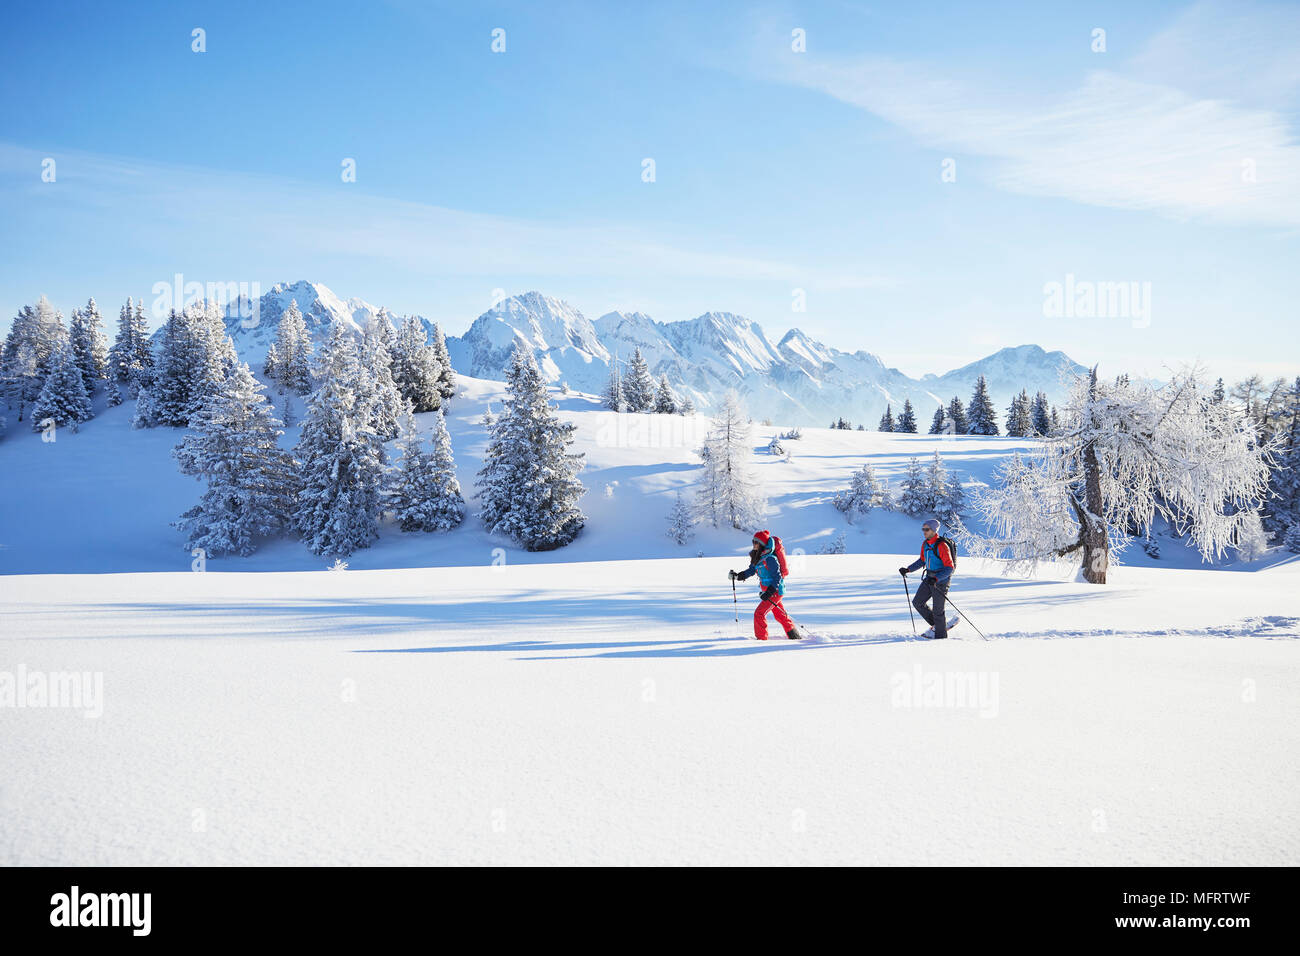 Snowshoeing, hiking in winter landscape, Simmering Alm, Obsteig, Mieming, Tyrol, Austria - Stock Image